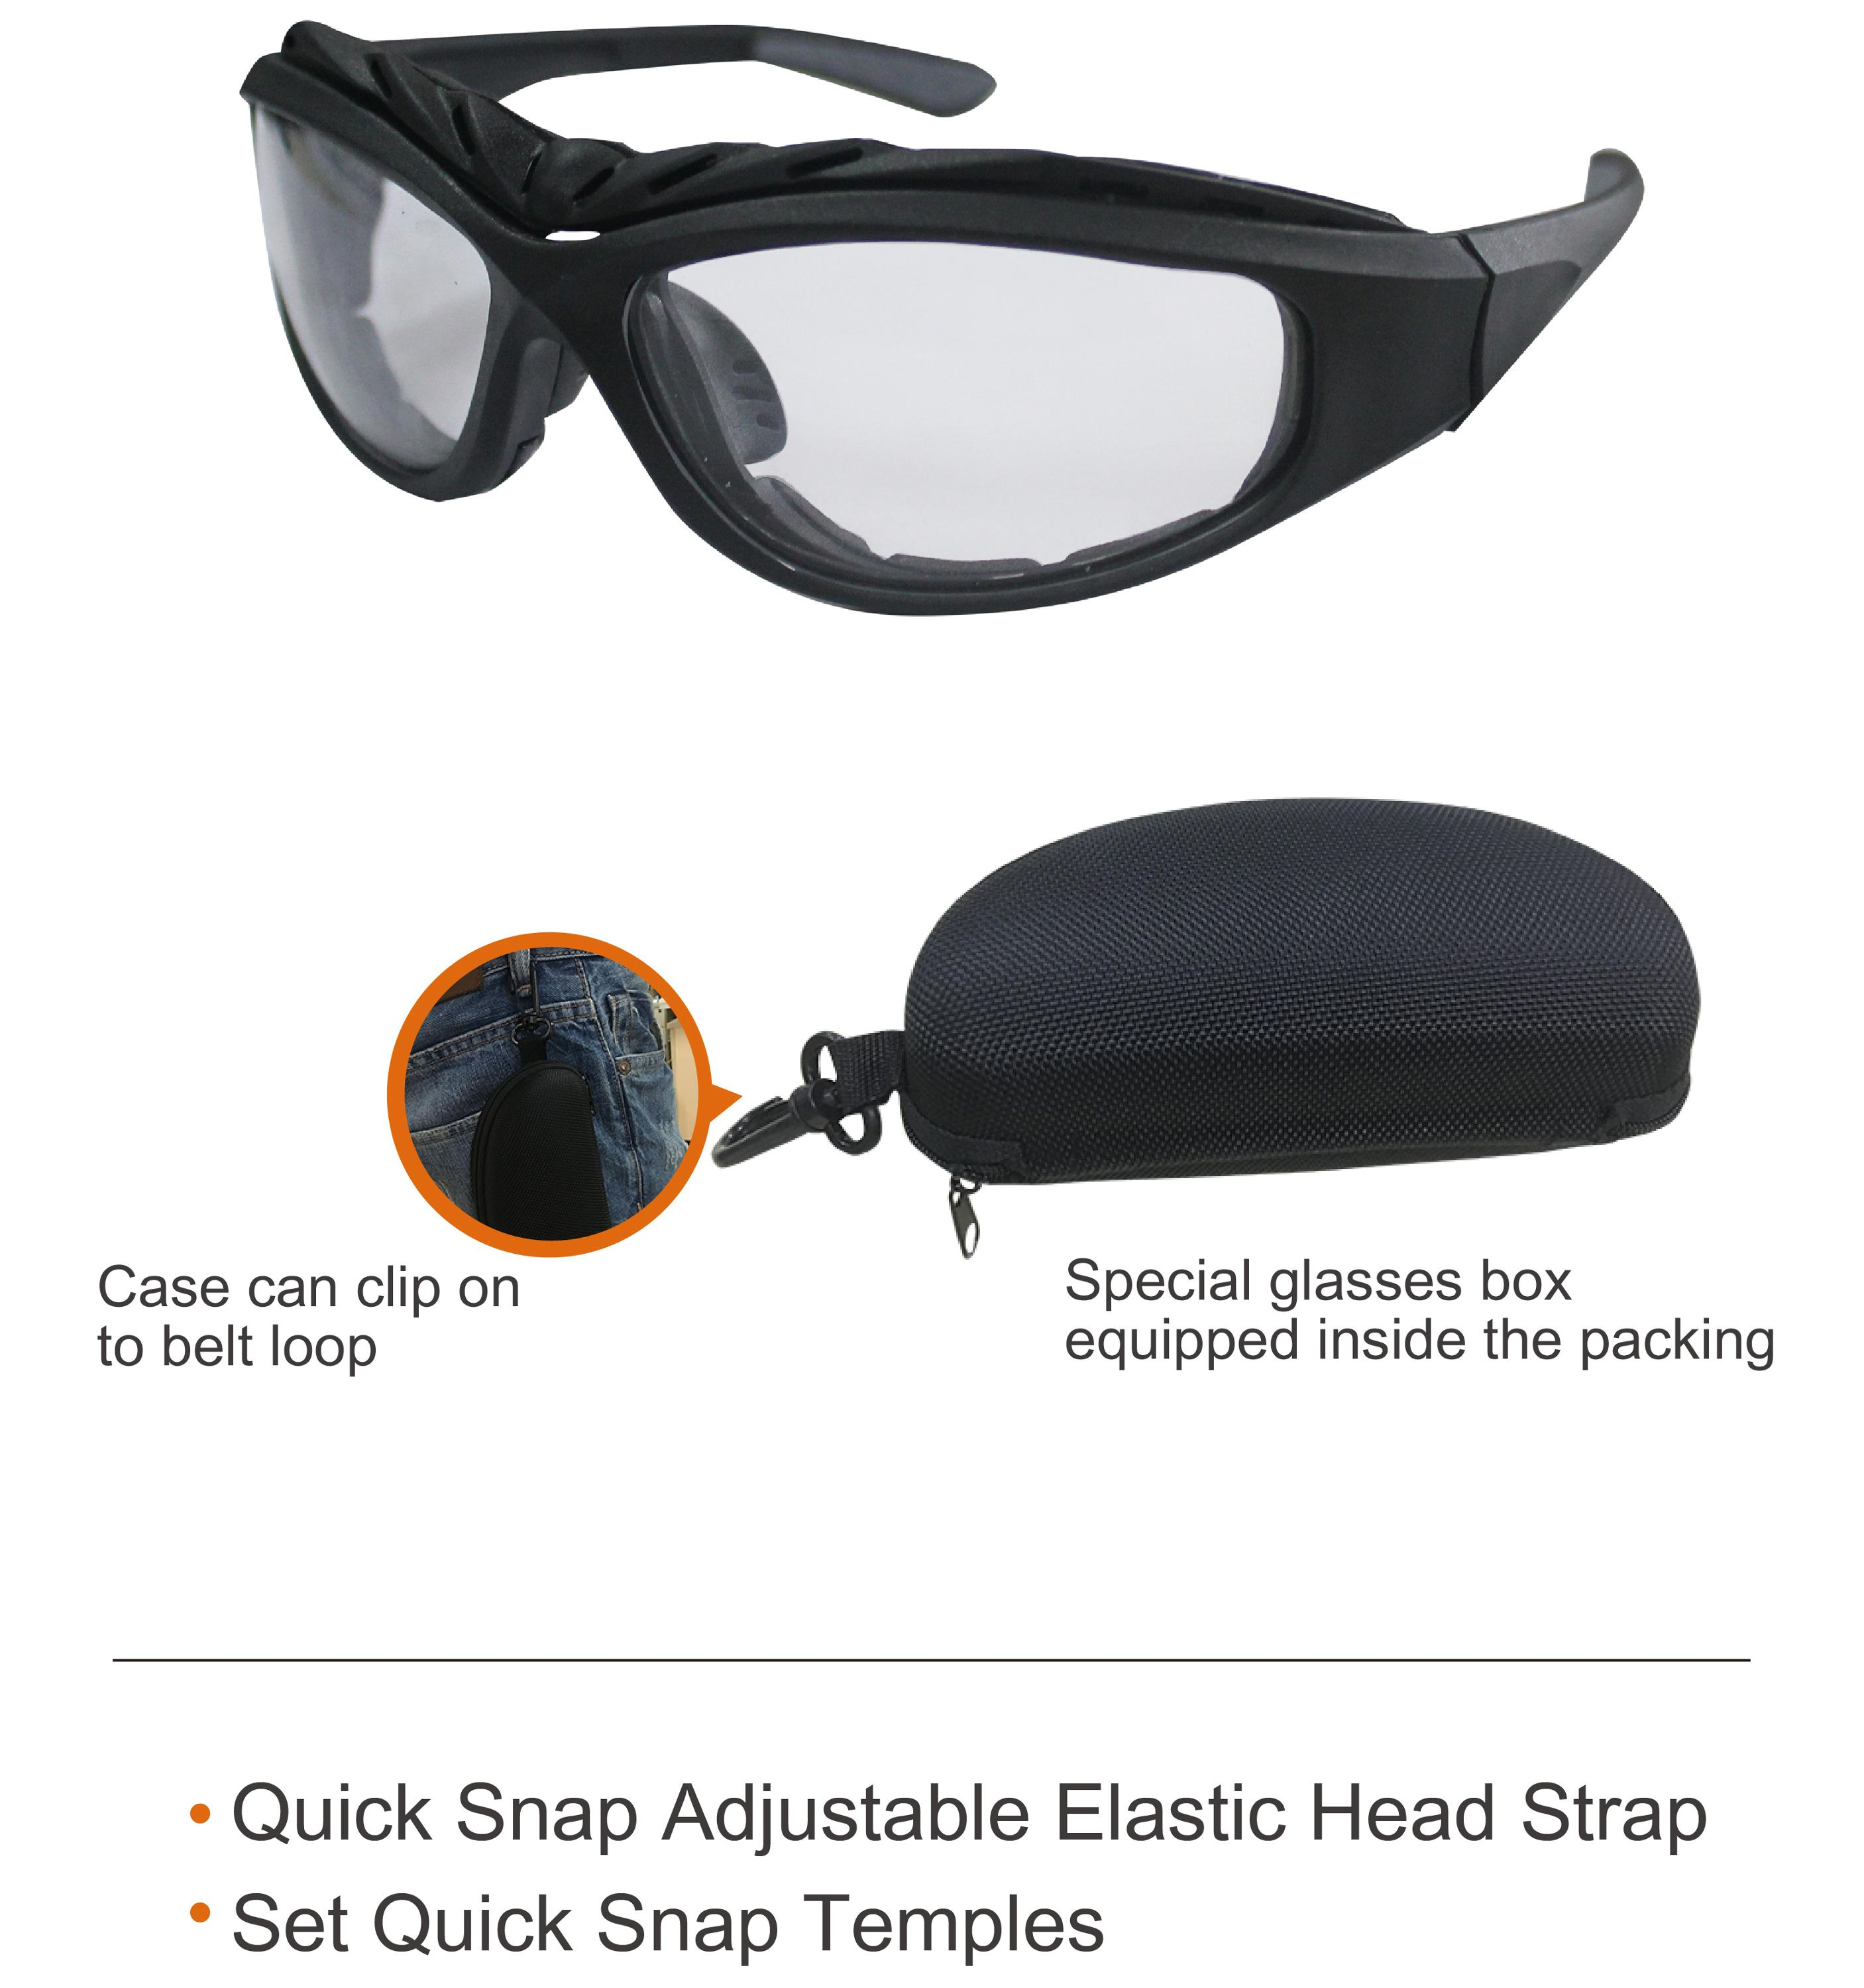 Rollingdog Protective Goggles Removable Safety Glasses Manufacturers China  - Buy Safety Glasses,Protective Goggles Removable Safety Glasses,Protective